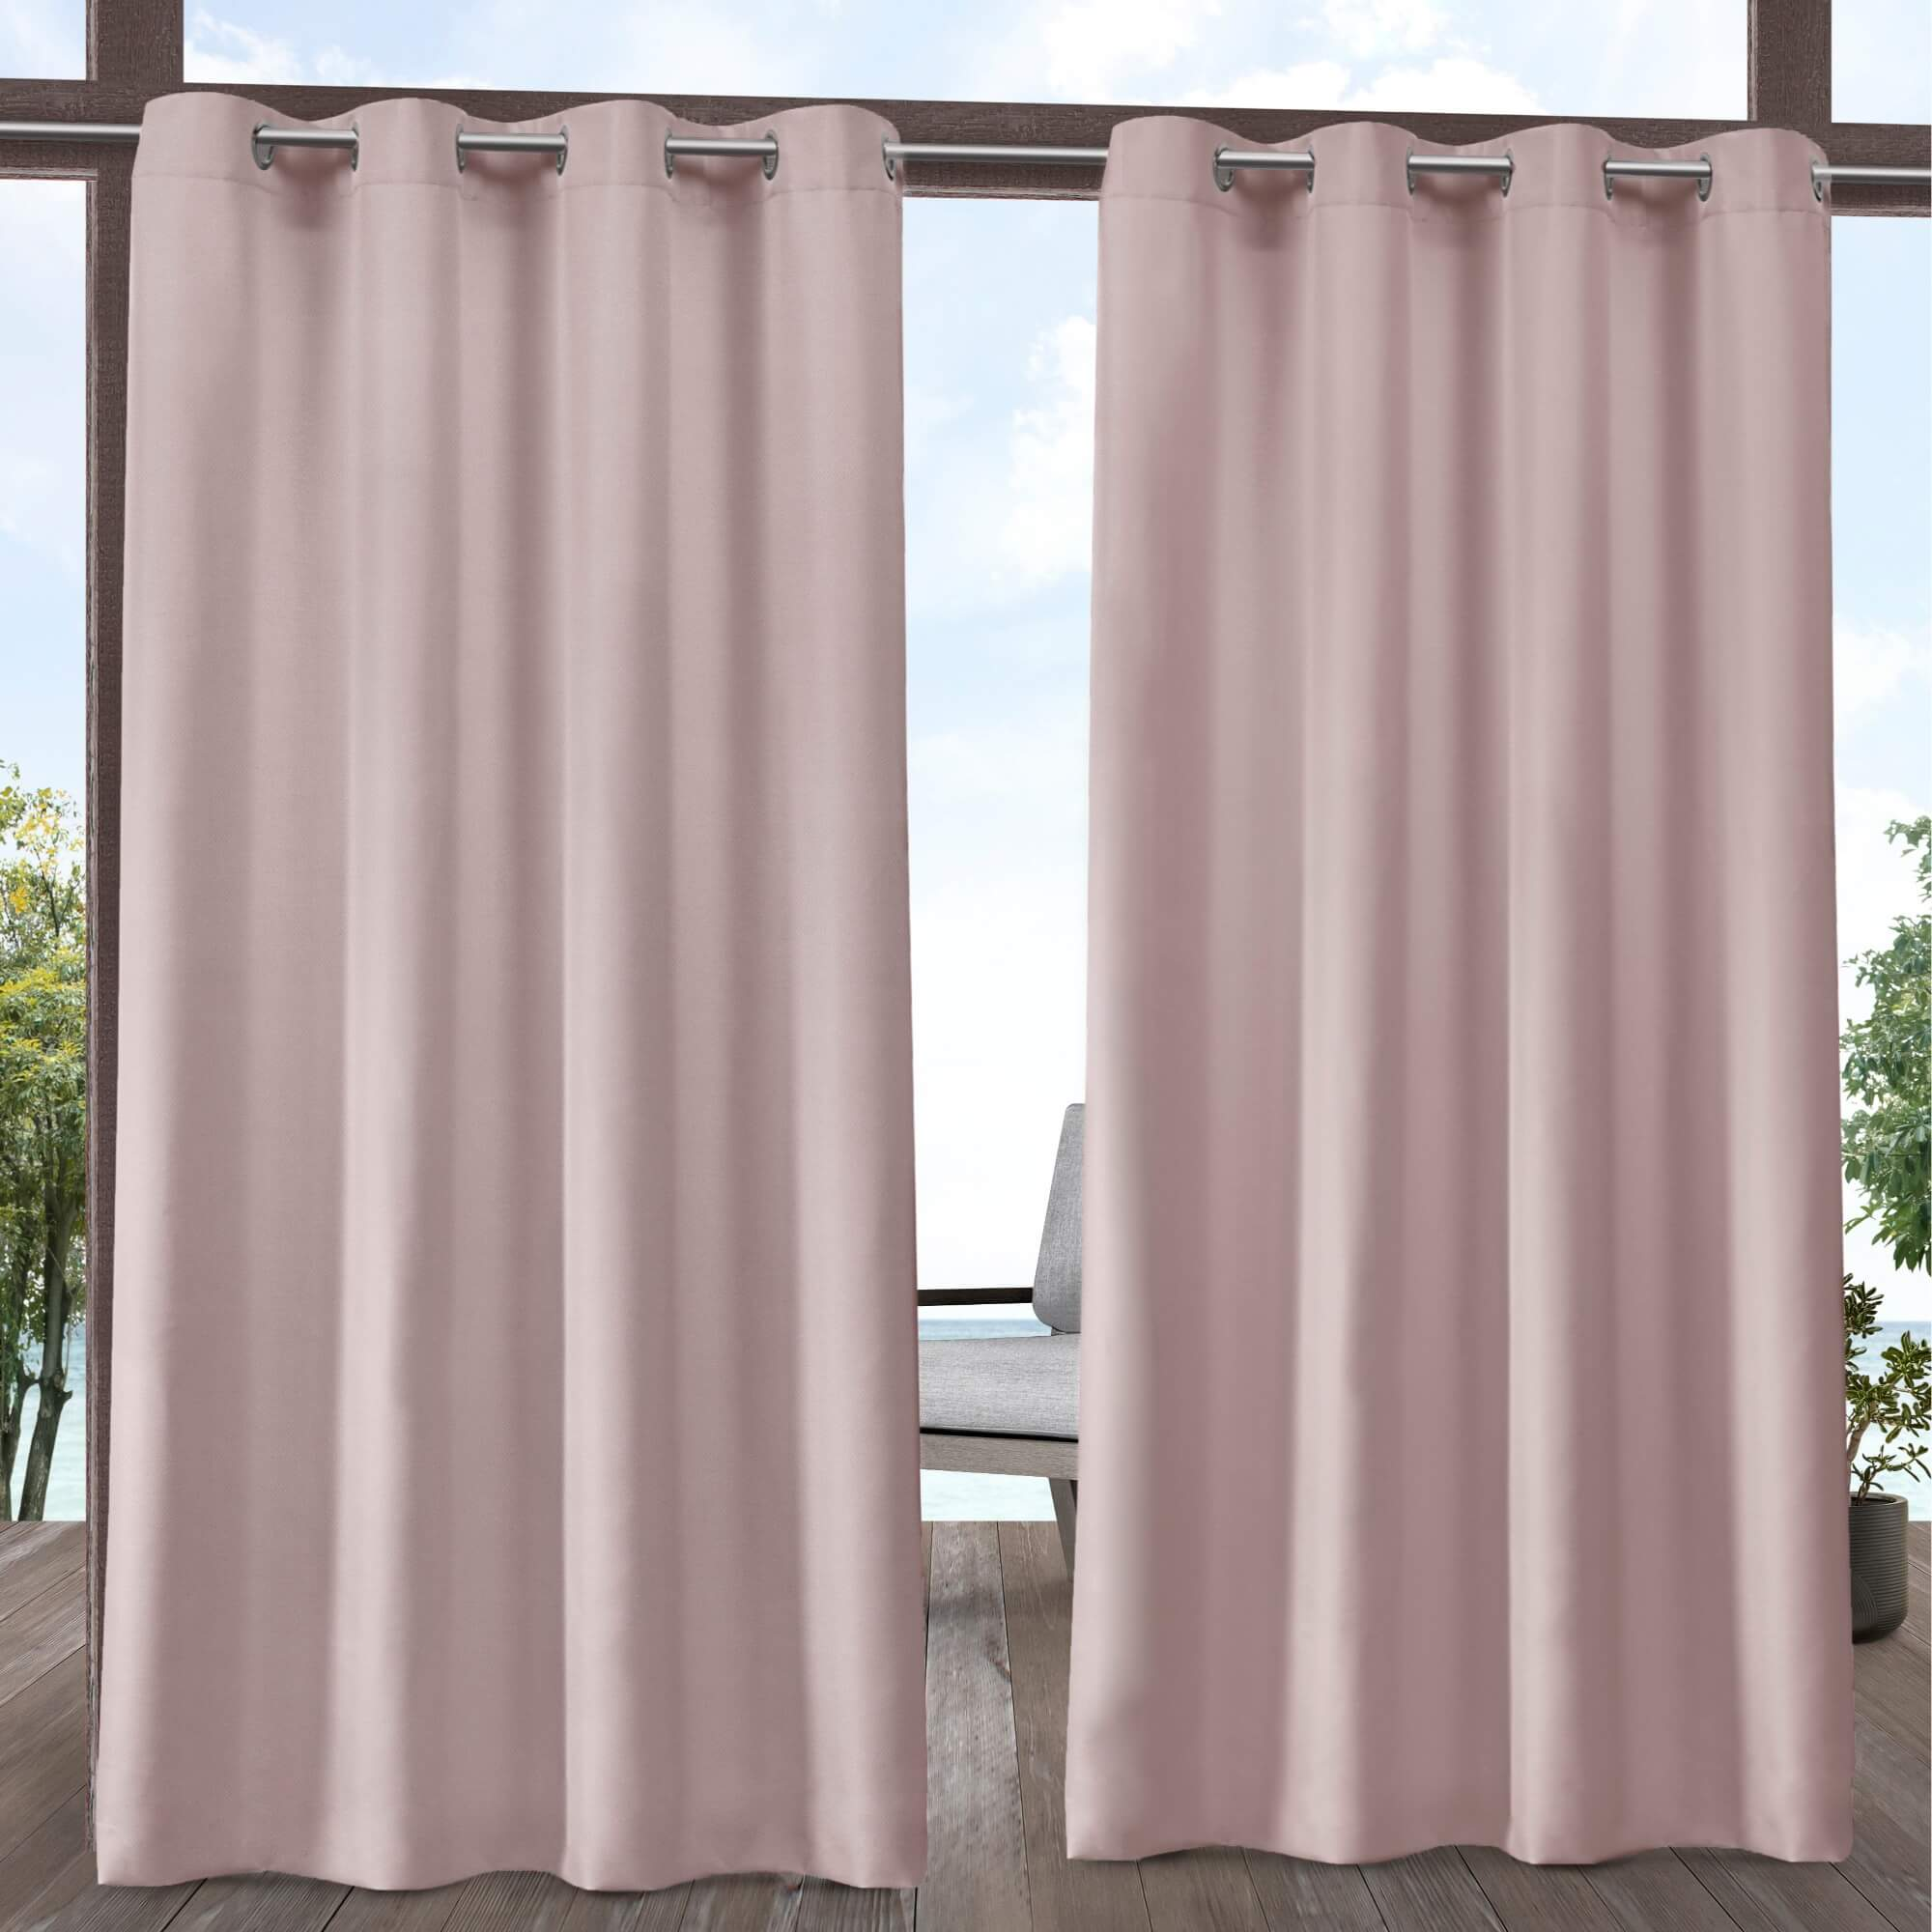 LUXURY AND PRIVACY OUTDOOR CURTAINS FOR PATIO